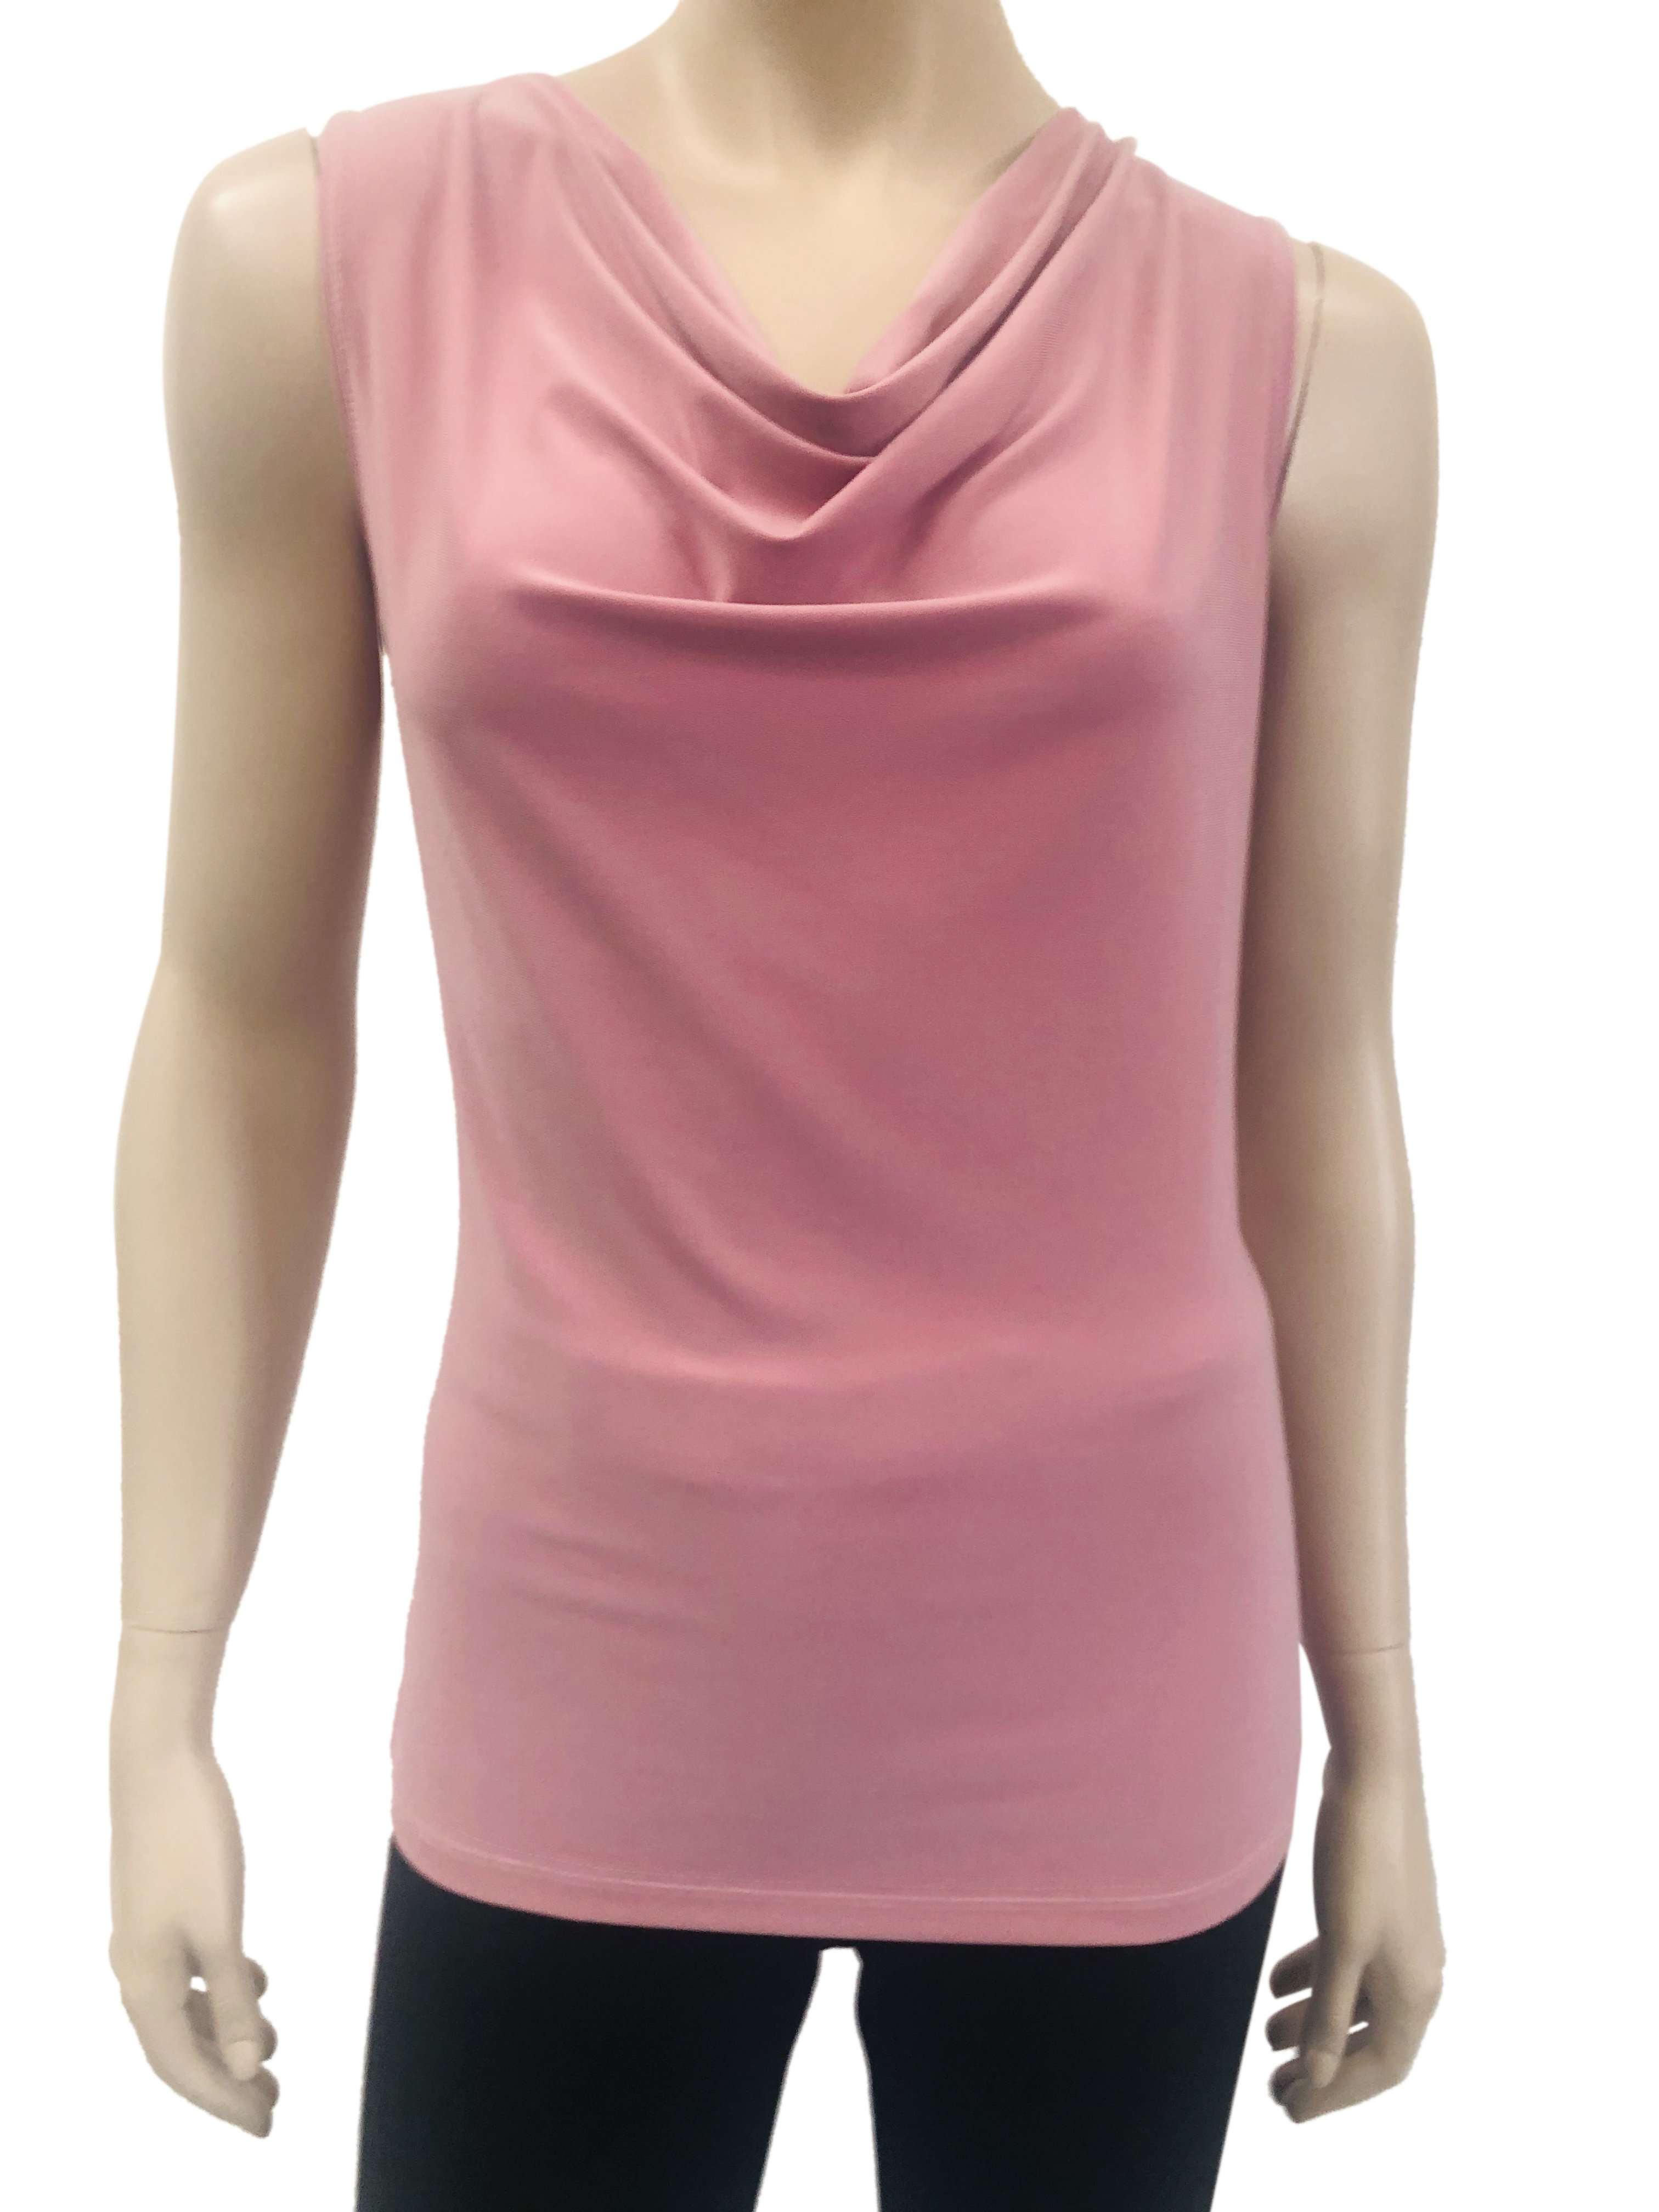 Women's Draped Neck Camisole Pink - Made in Canada- On sale - Yvonne Marie - Yvonne Marie